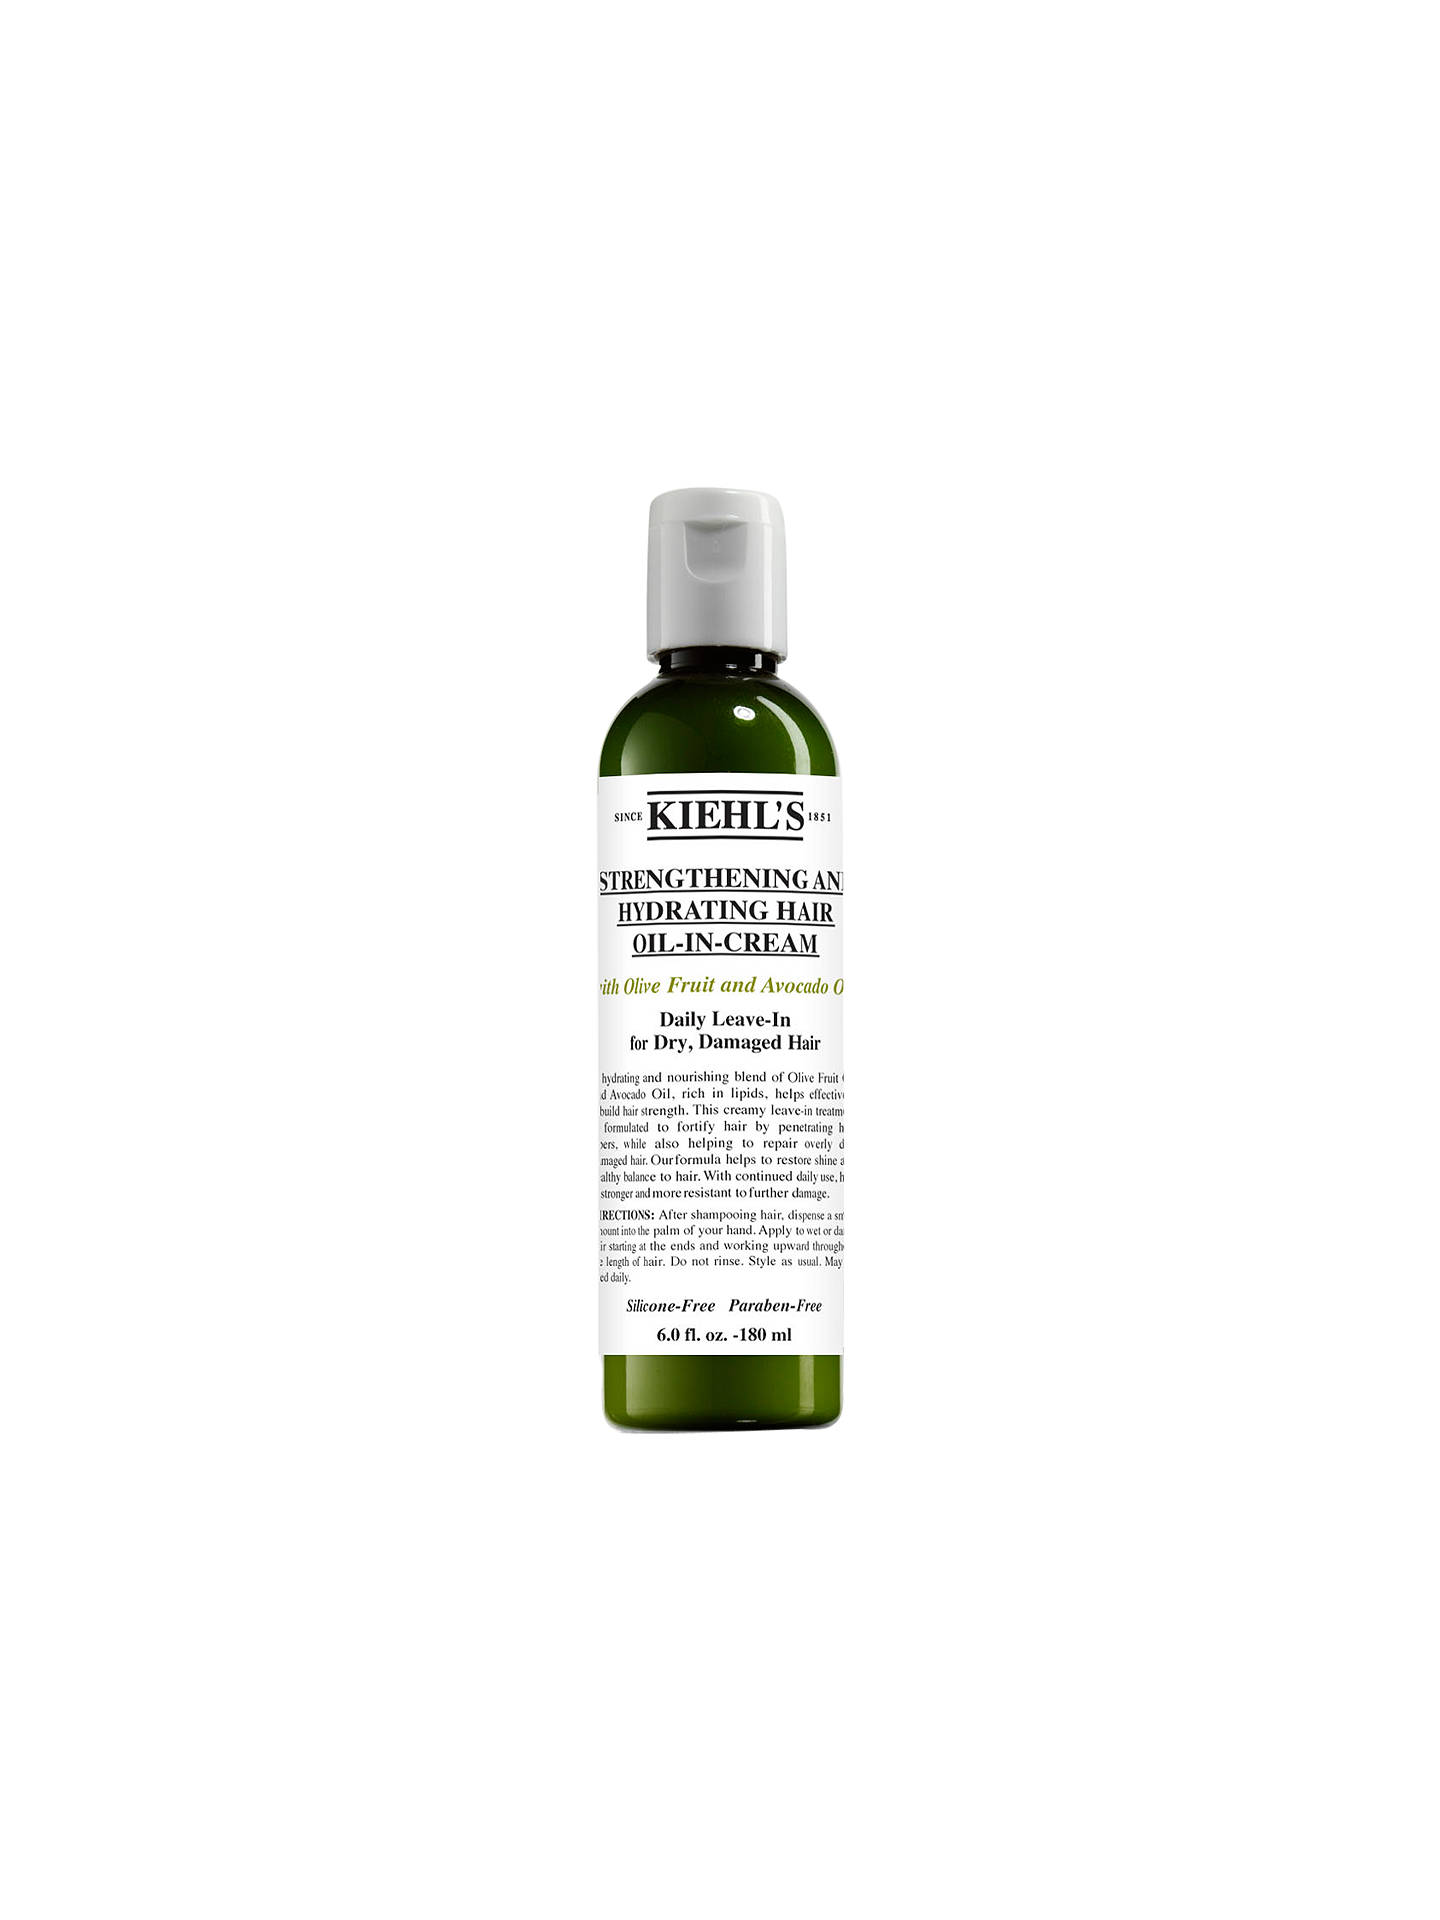 BuyKiehl's Olive & Avocado Leave-in Oil-in-Cream, 180ml Online at johnlewis.com